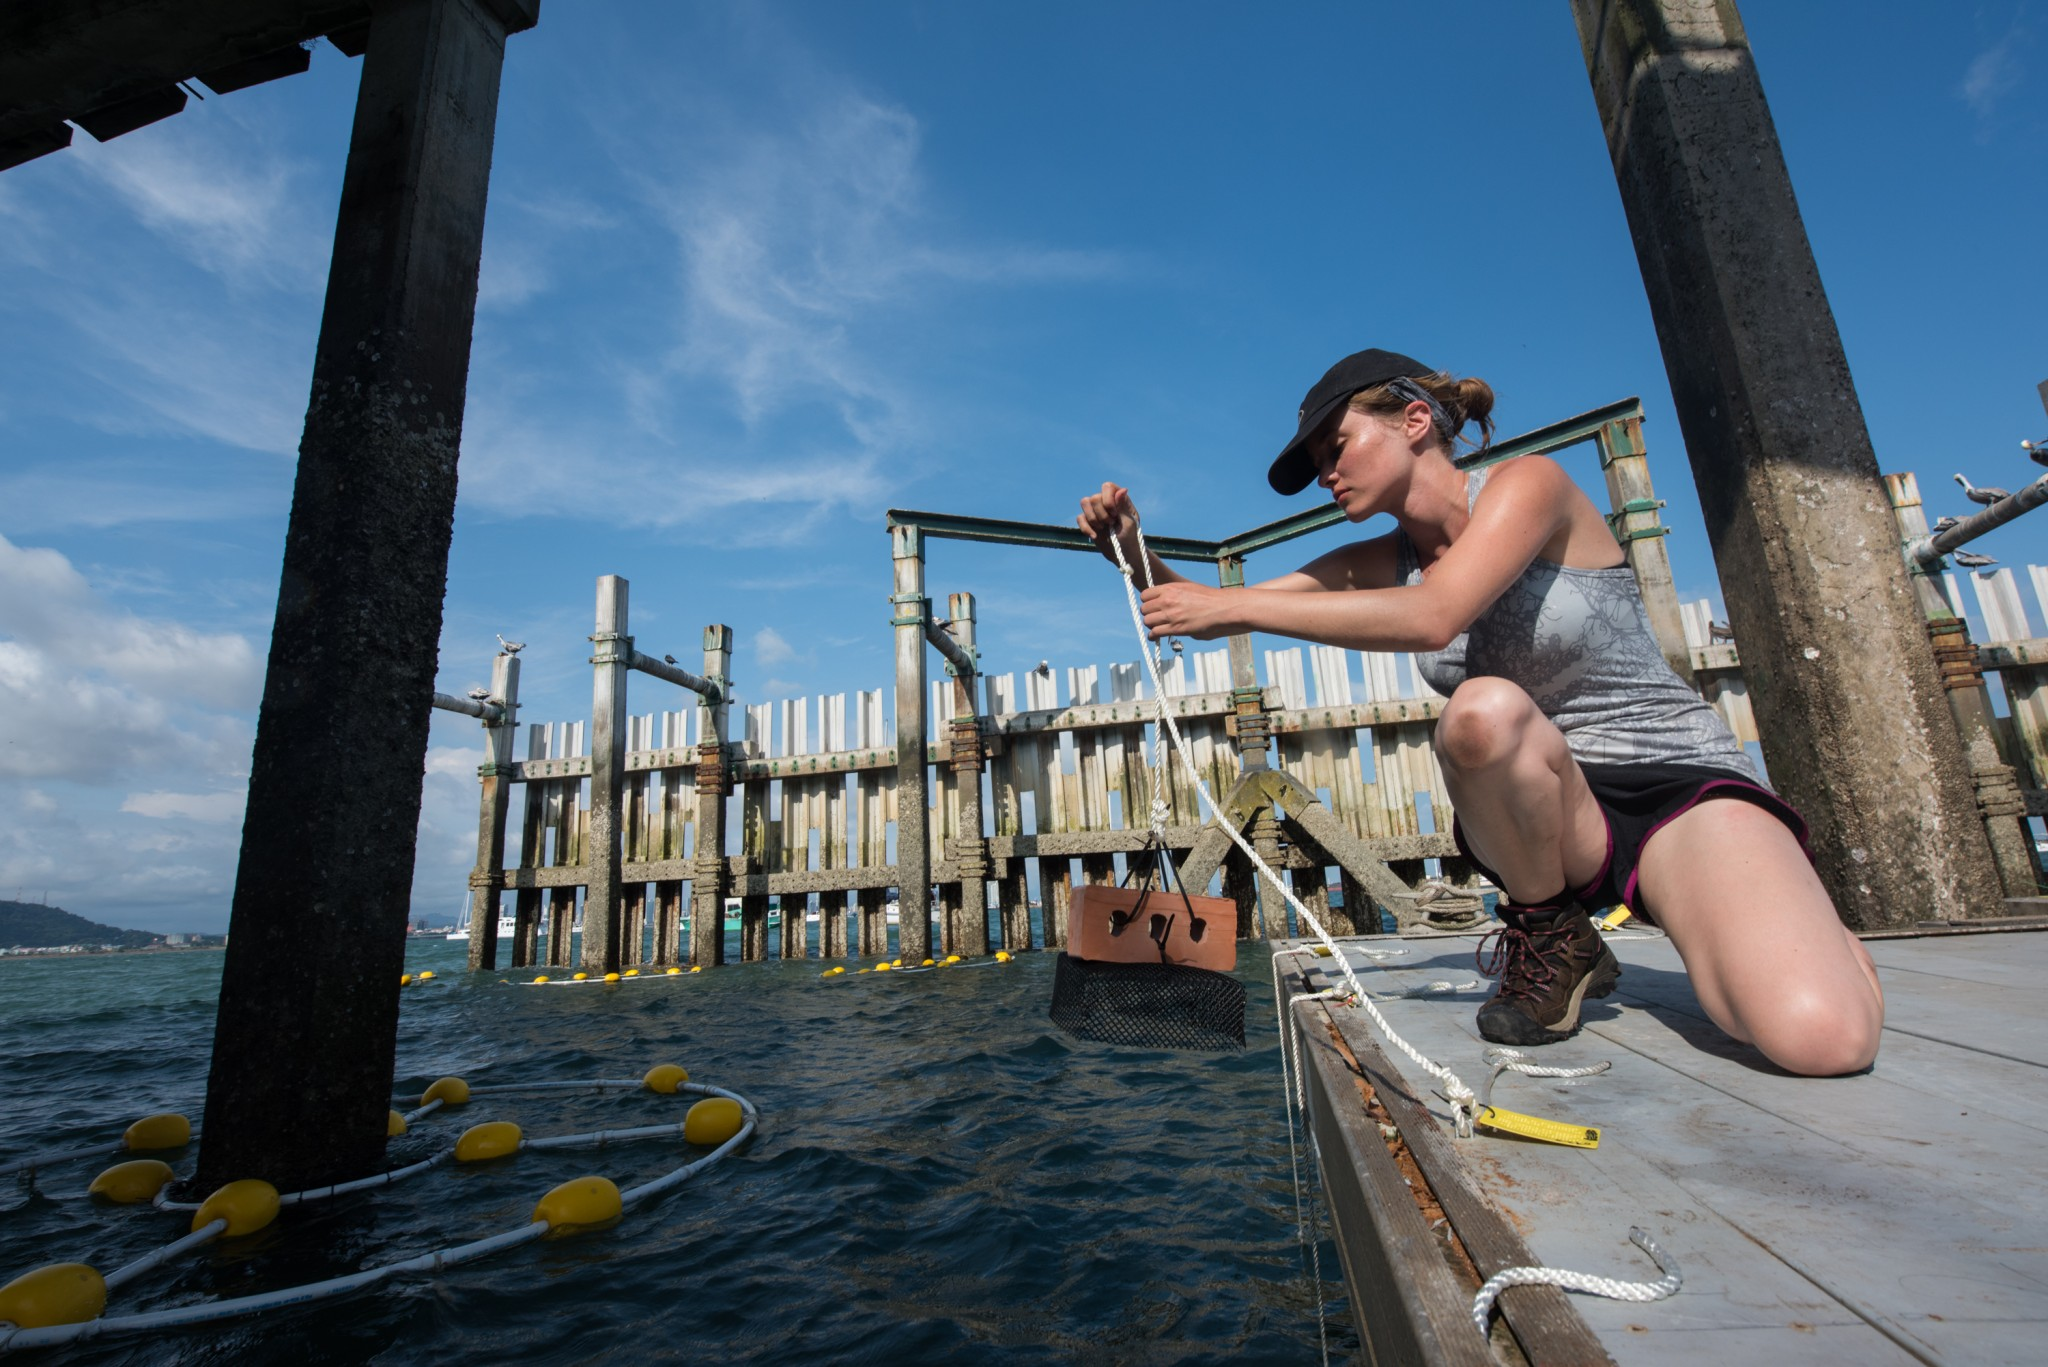 Alyssa Murad '19 puts a settlement plate into the Bay of Panama off the Smithsonian Tropical Research Institute's (STRI) Naos Island dock. Thousands of such plates, which become colonies for marine creatures, are being deployed by STRI as part of The BioVision Project. Murad is working at STRI as part of COA's vigorous internship program.